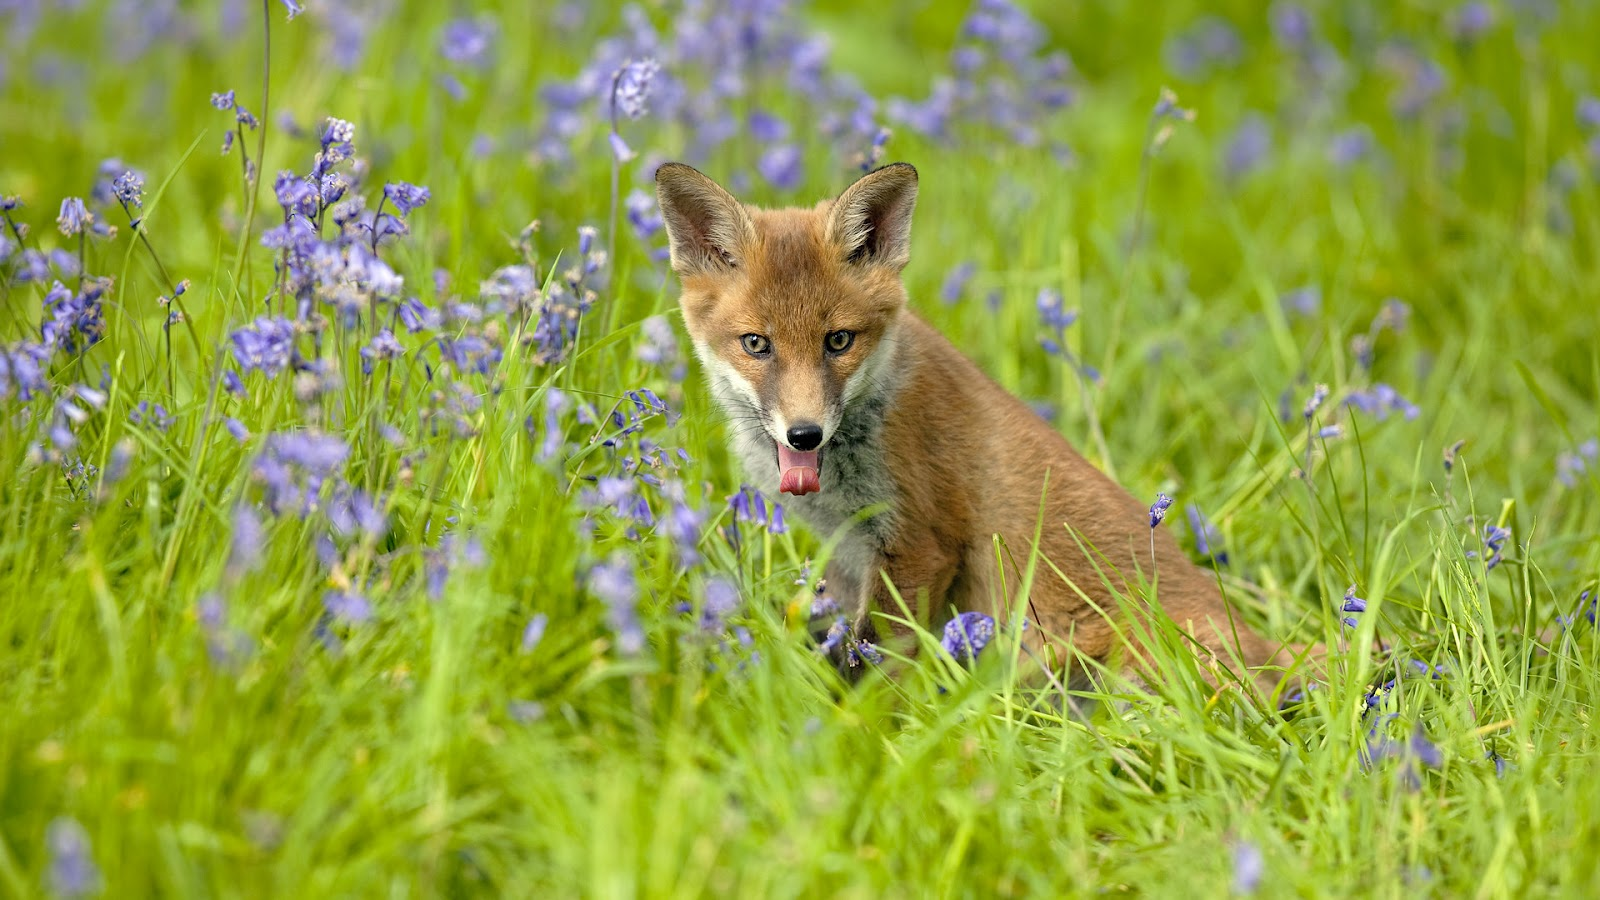 HD animal wallpaper of a red fox in the high grass Fox wallpaper 1600x900